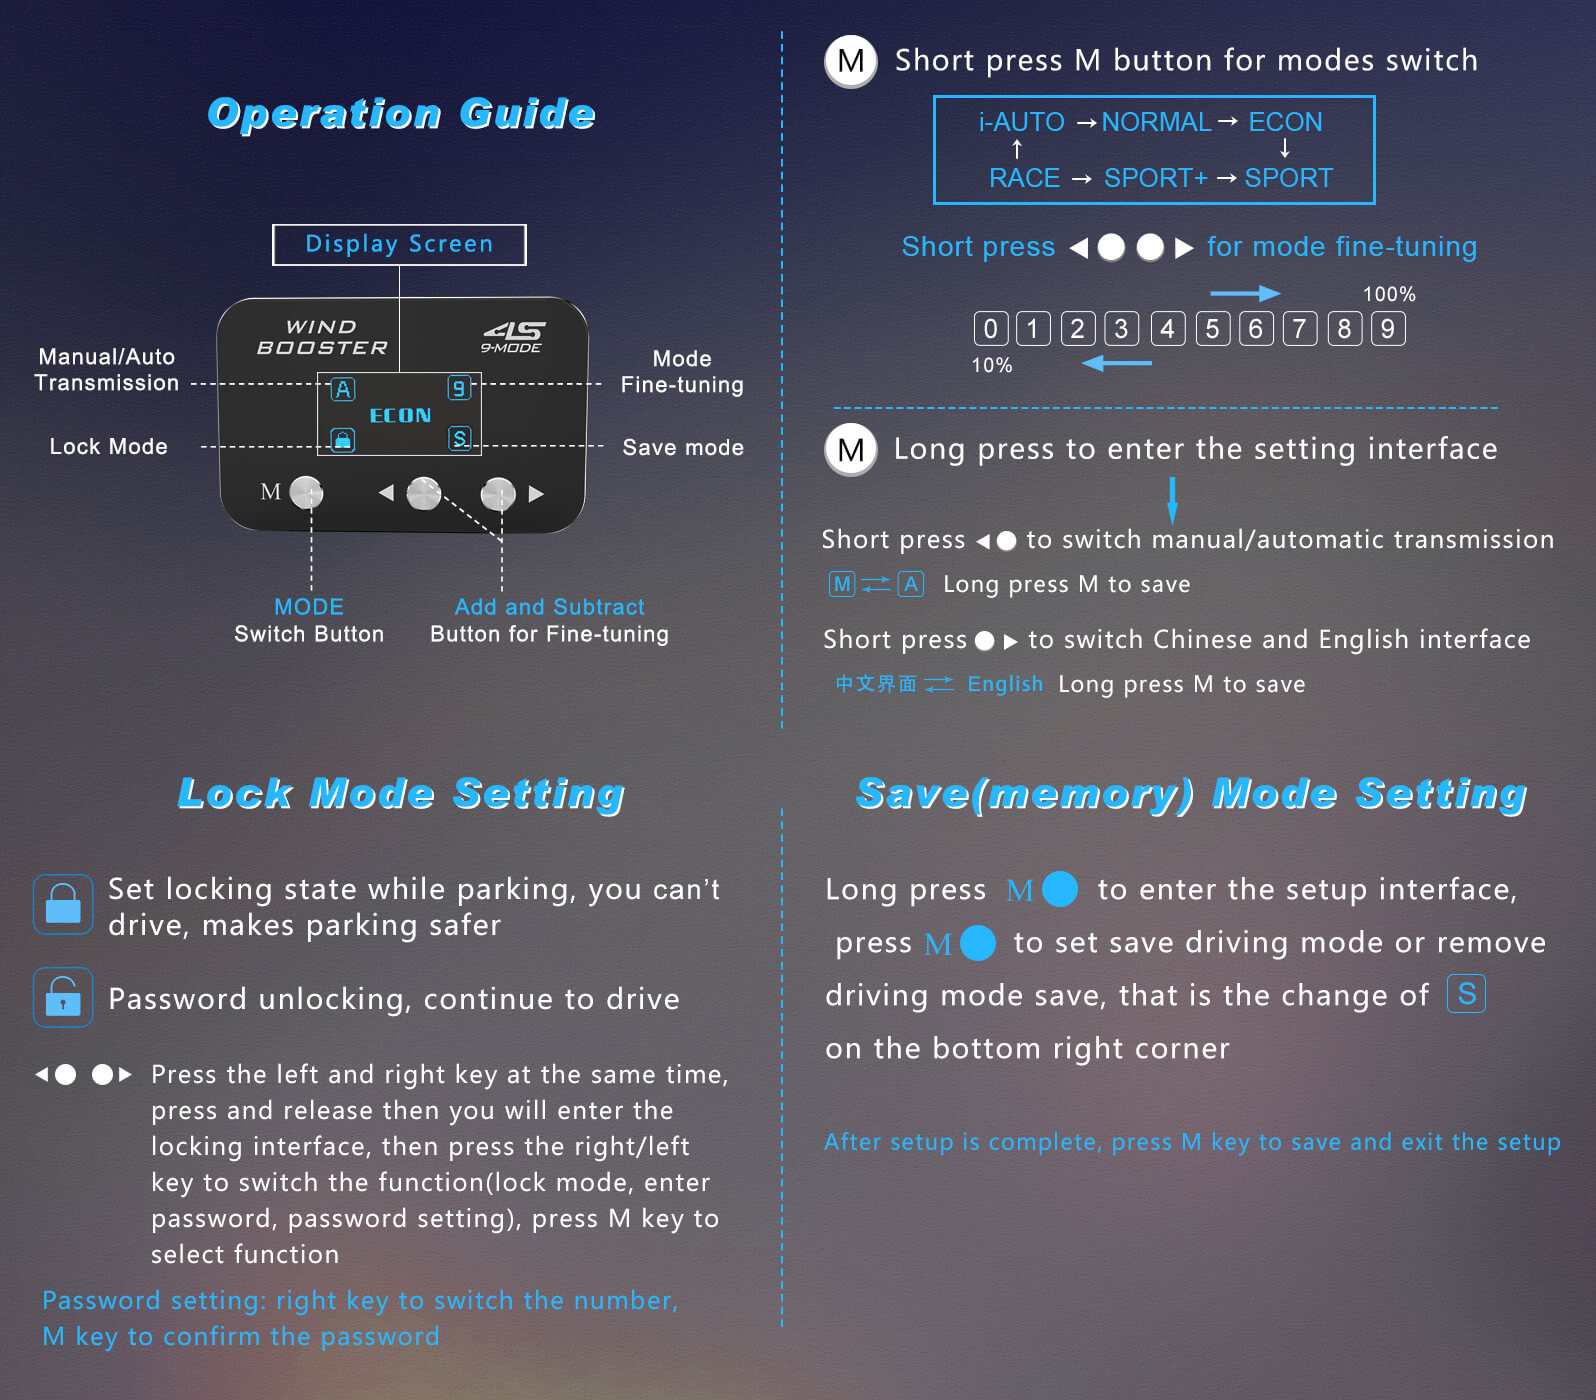 4s operation guide